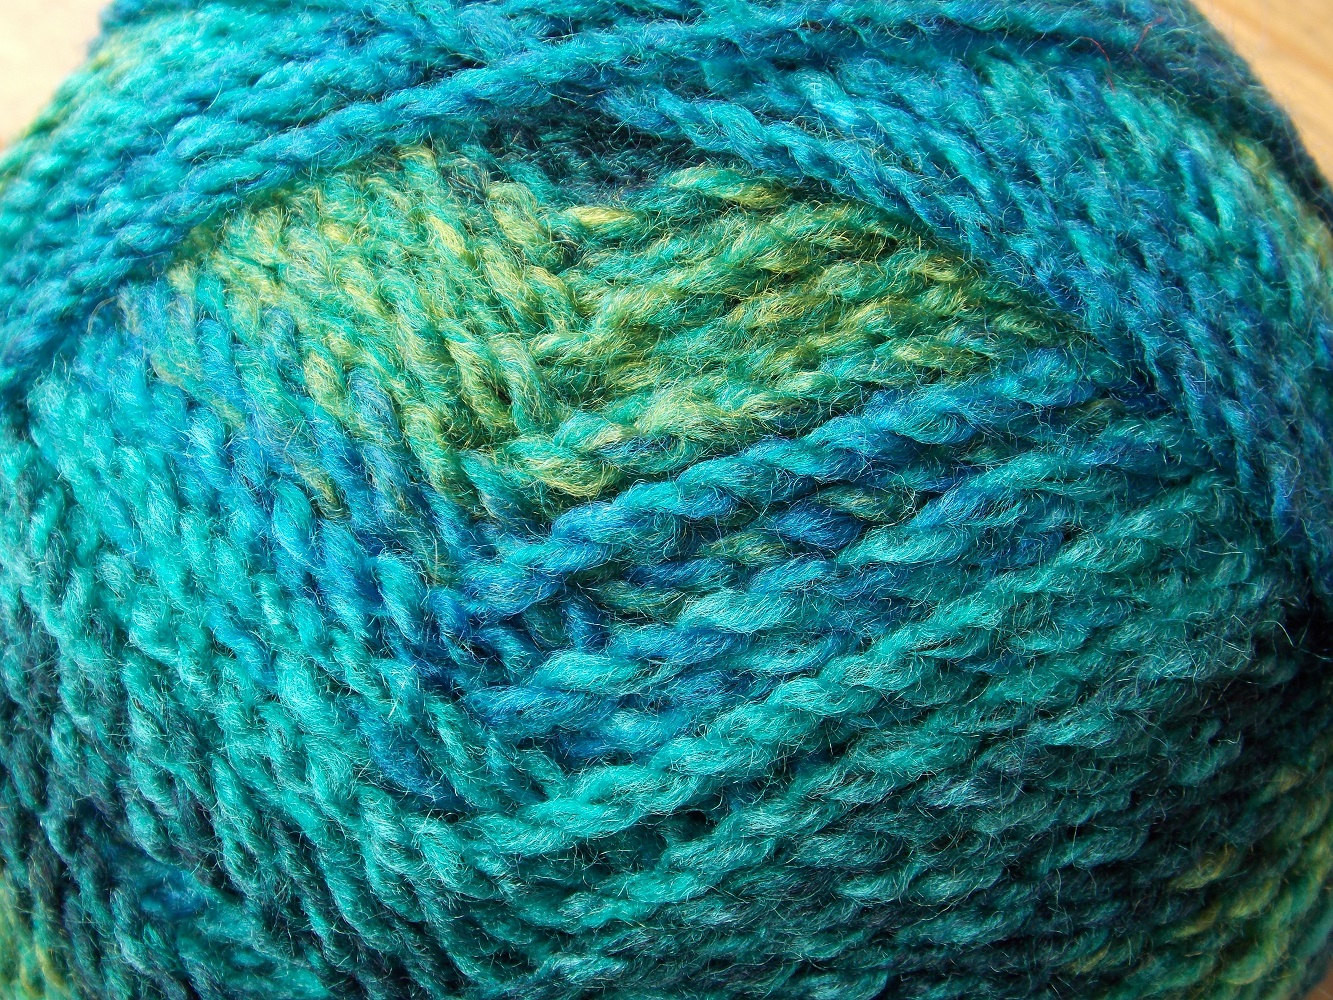 Marble Chunky Yarn Unique Turquoise Yarn Marble Chunky James C Brett 200 G 313 Of Amazing 46 Pictures Marble Chunky Yarn